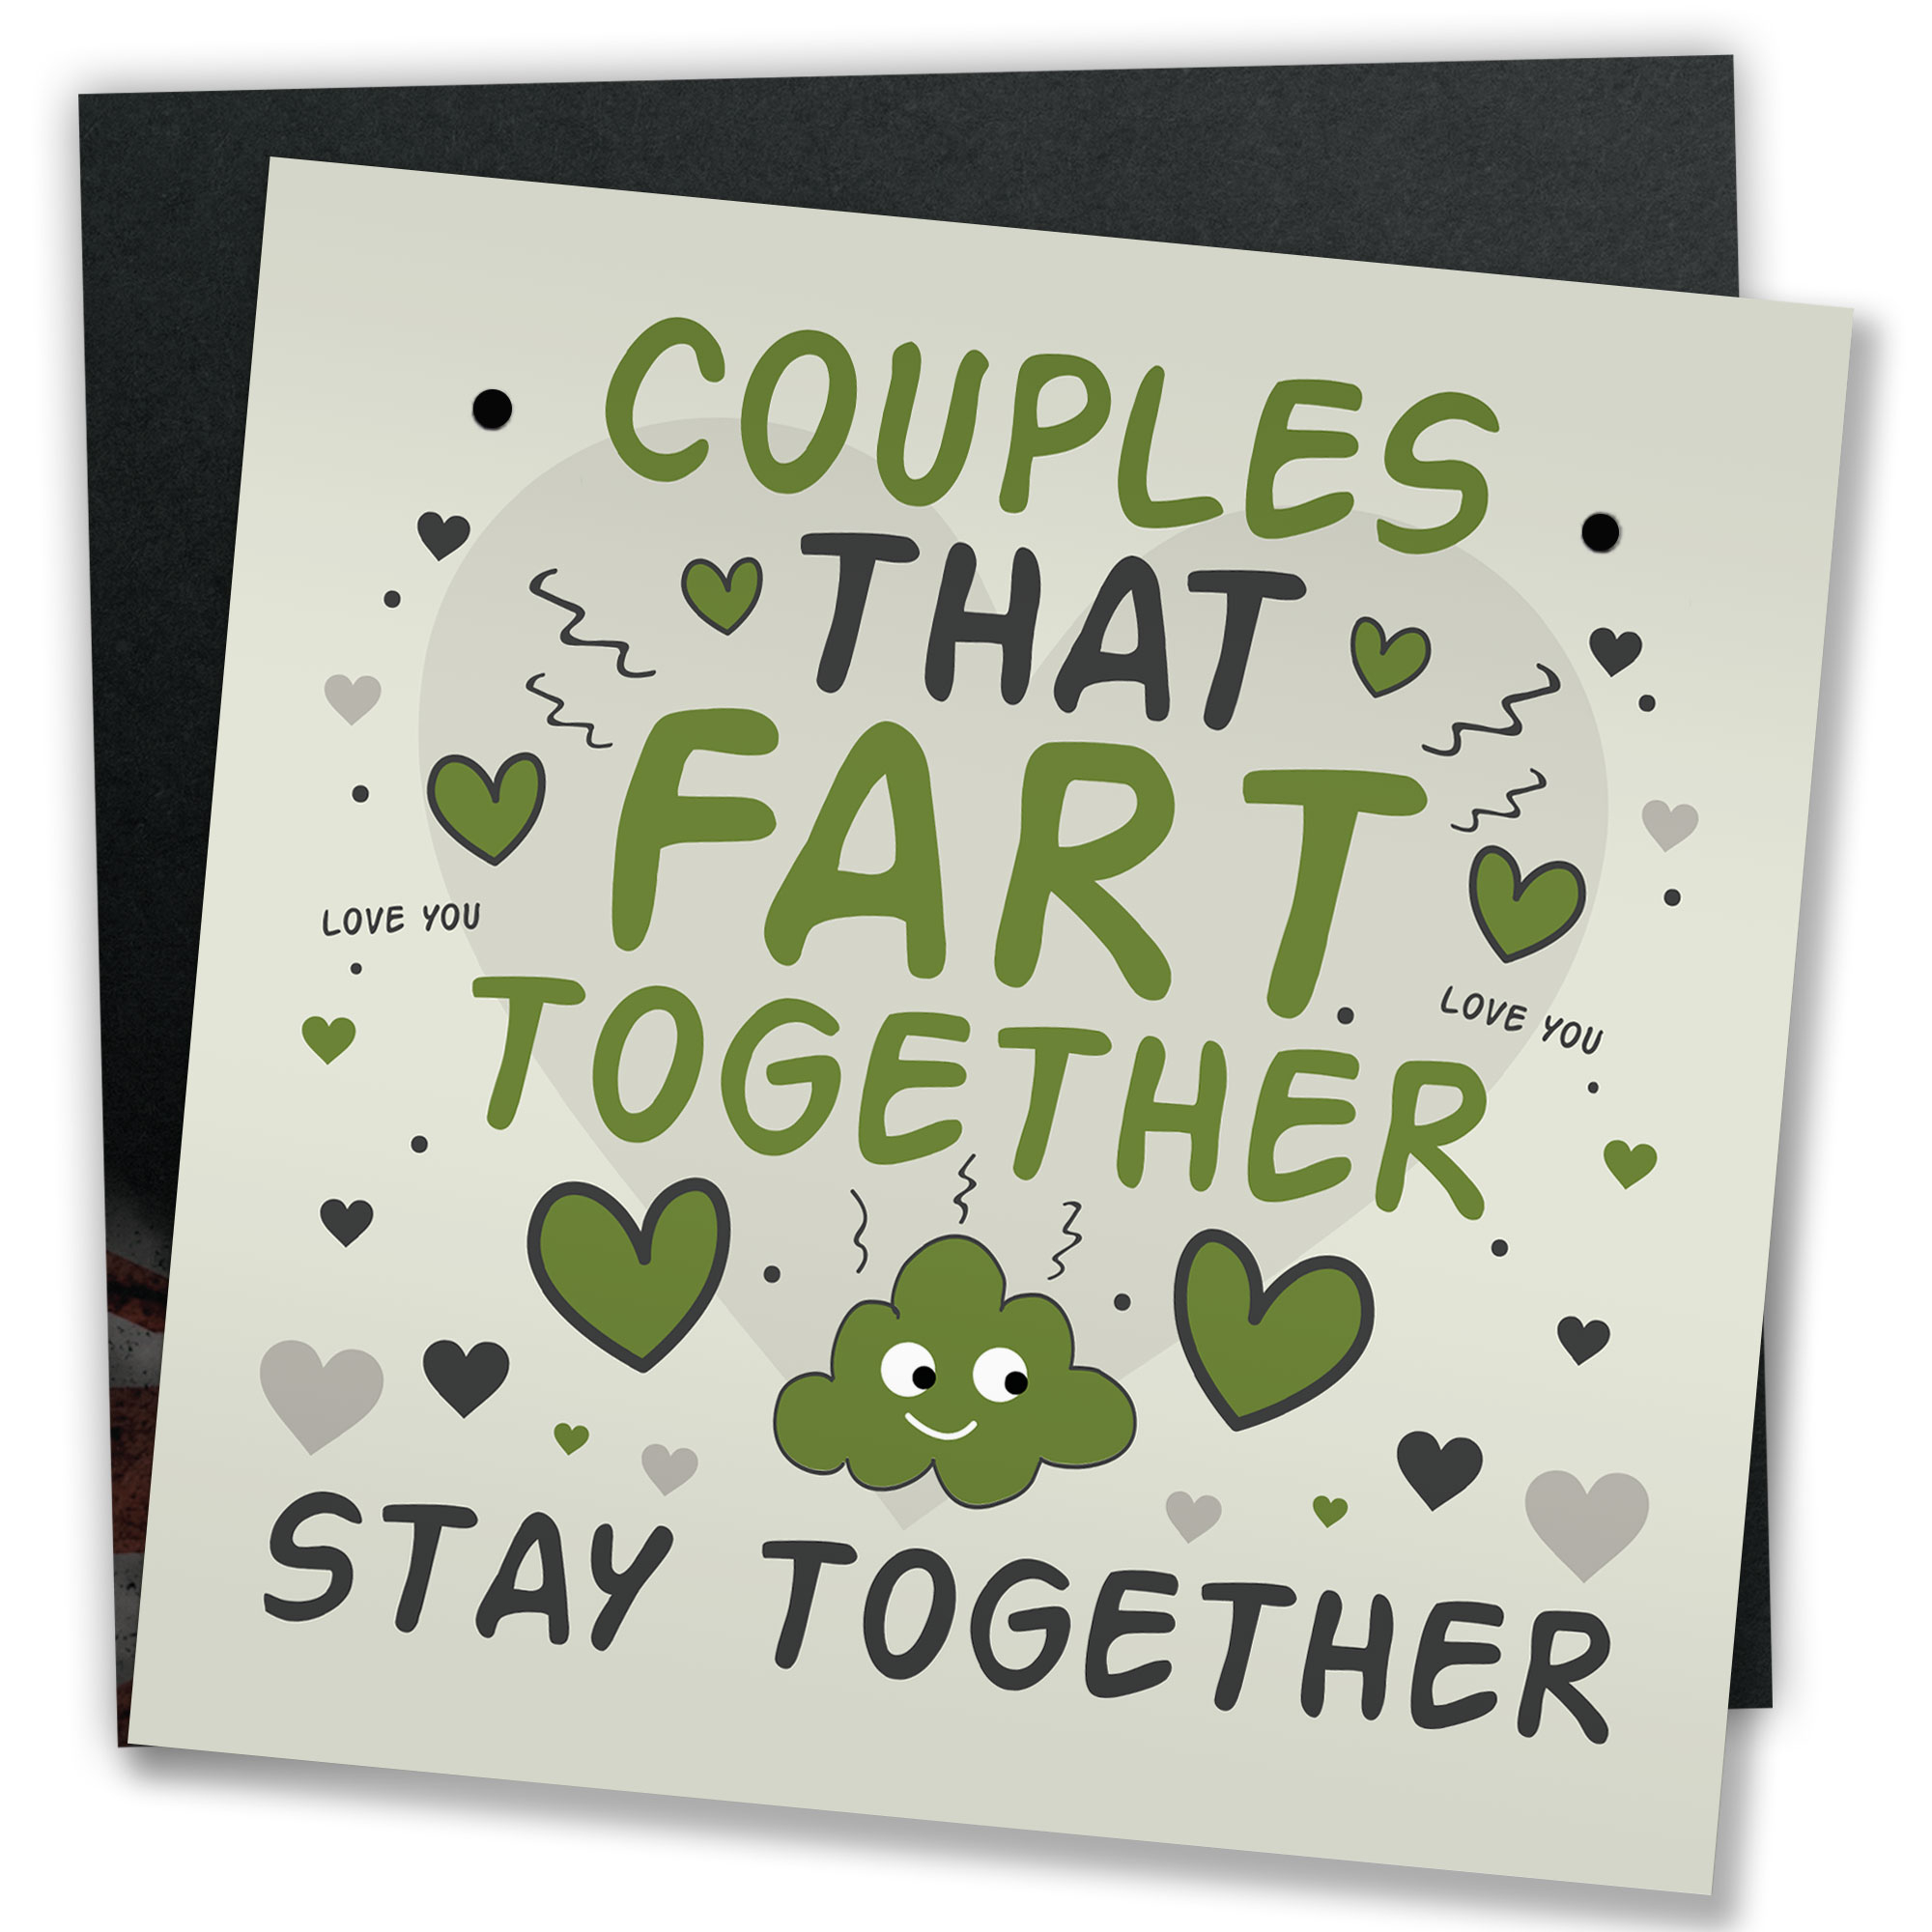 Birthday Card Ideas For Wife Details About Funny Boyfriend Girlfriend Birthday Anniversary Card Gifts For Husband Wife